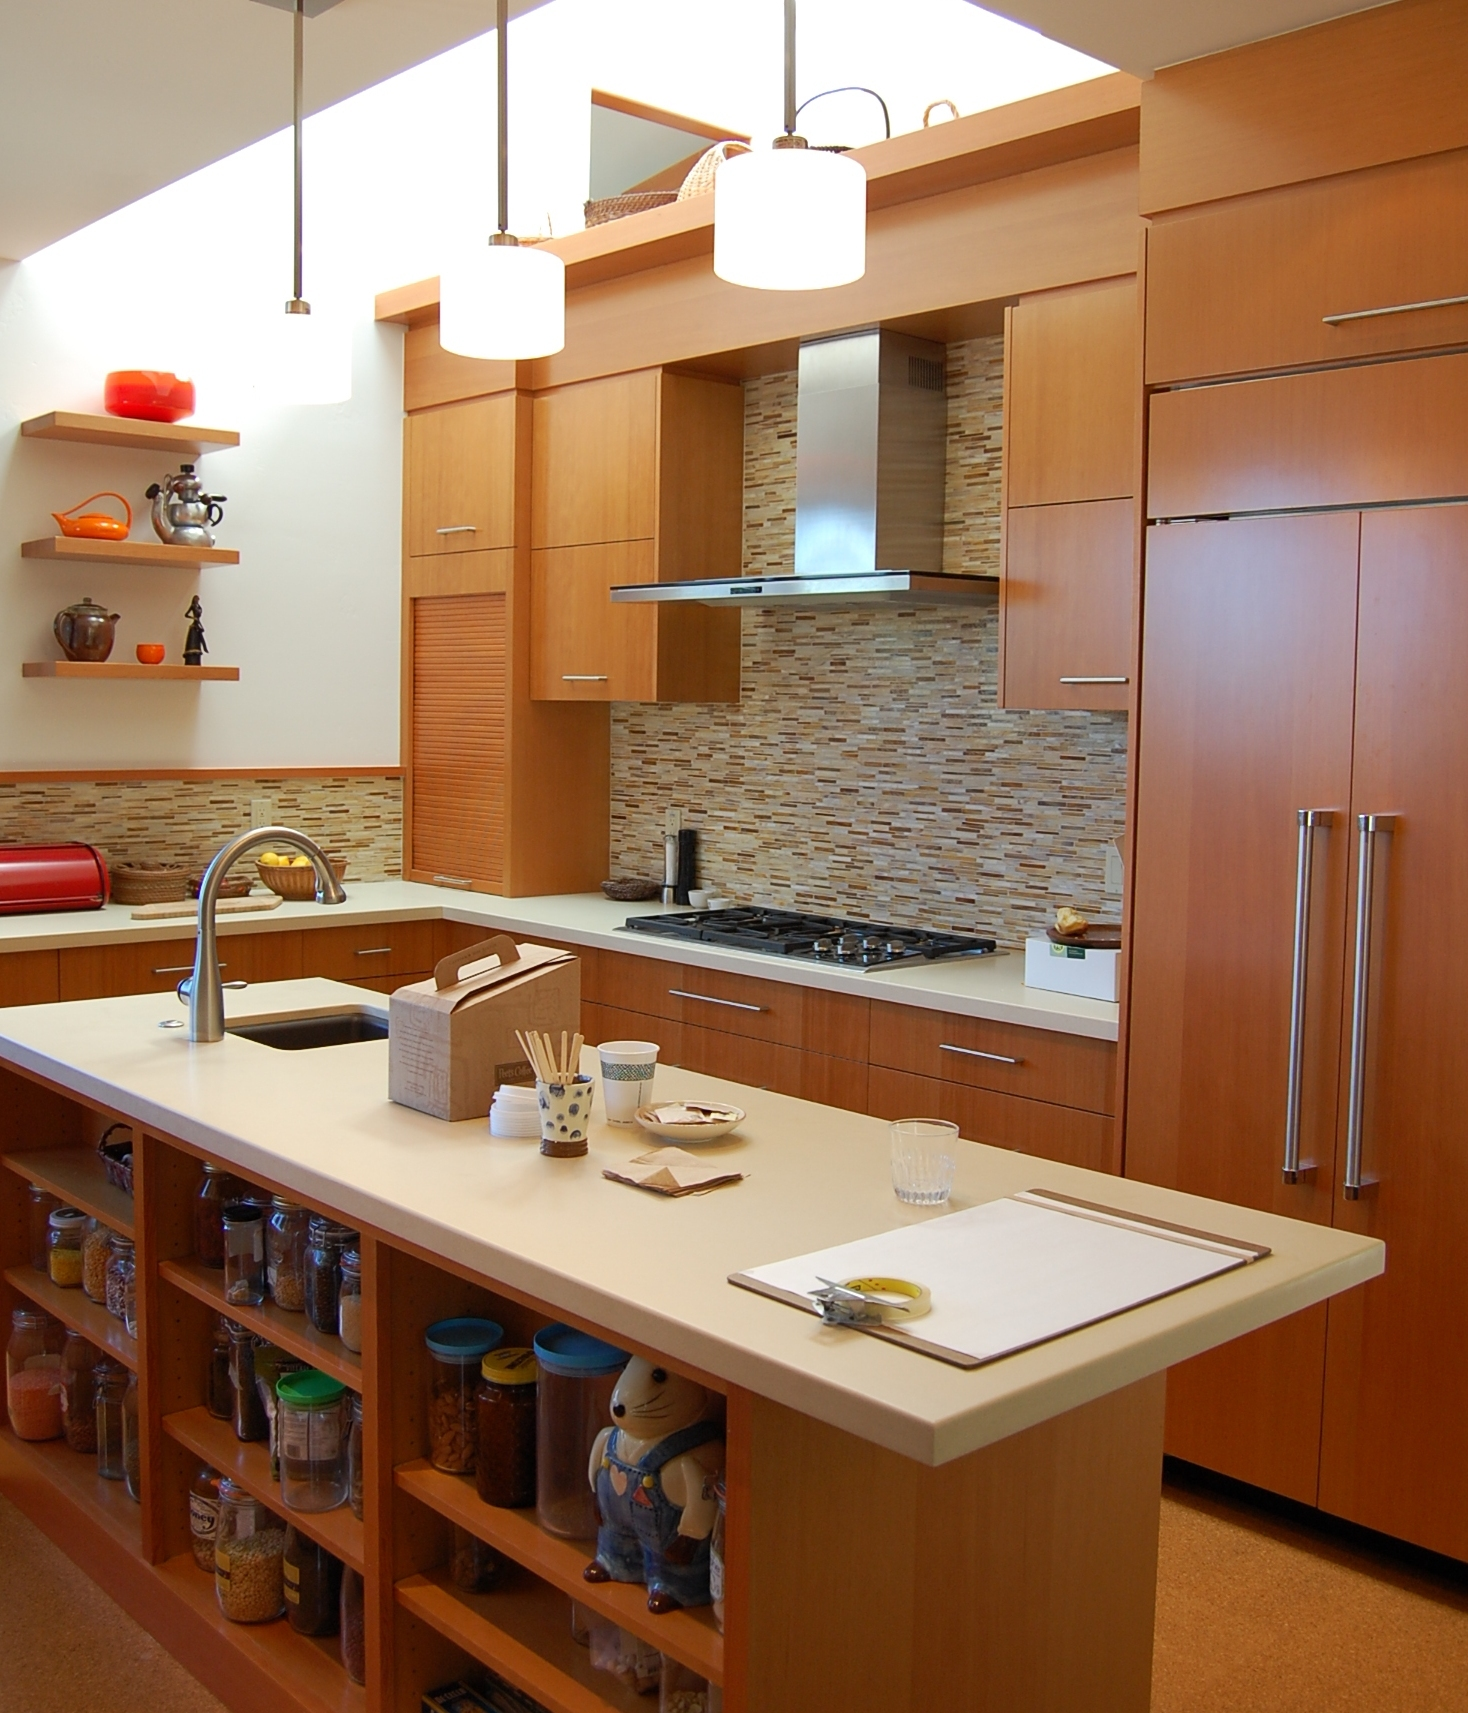 Modern Kitchens By The Outstanding Zed Experience: NorCal Construction